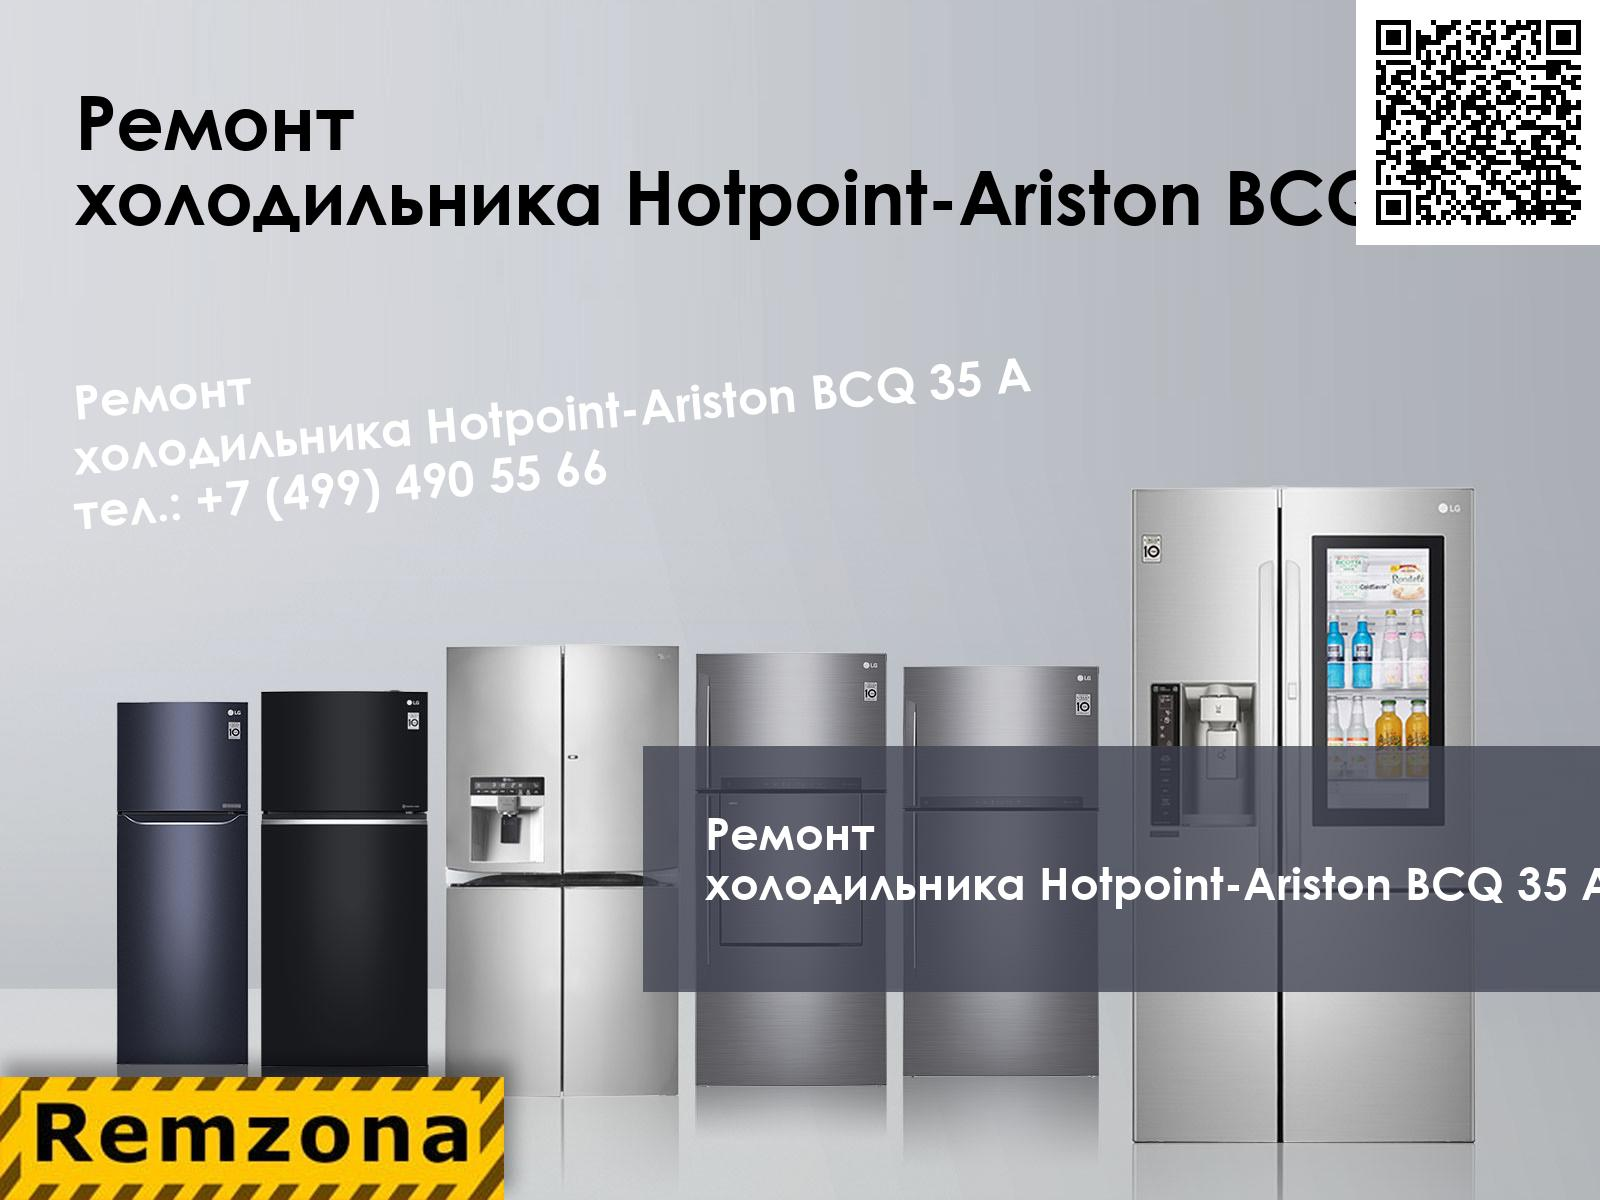 Ремонт холодильника Hotpoint-Ariston BCQ 35 A